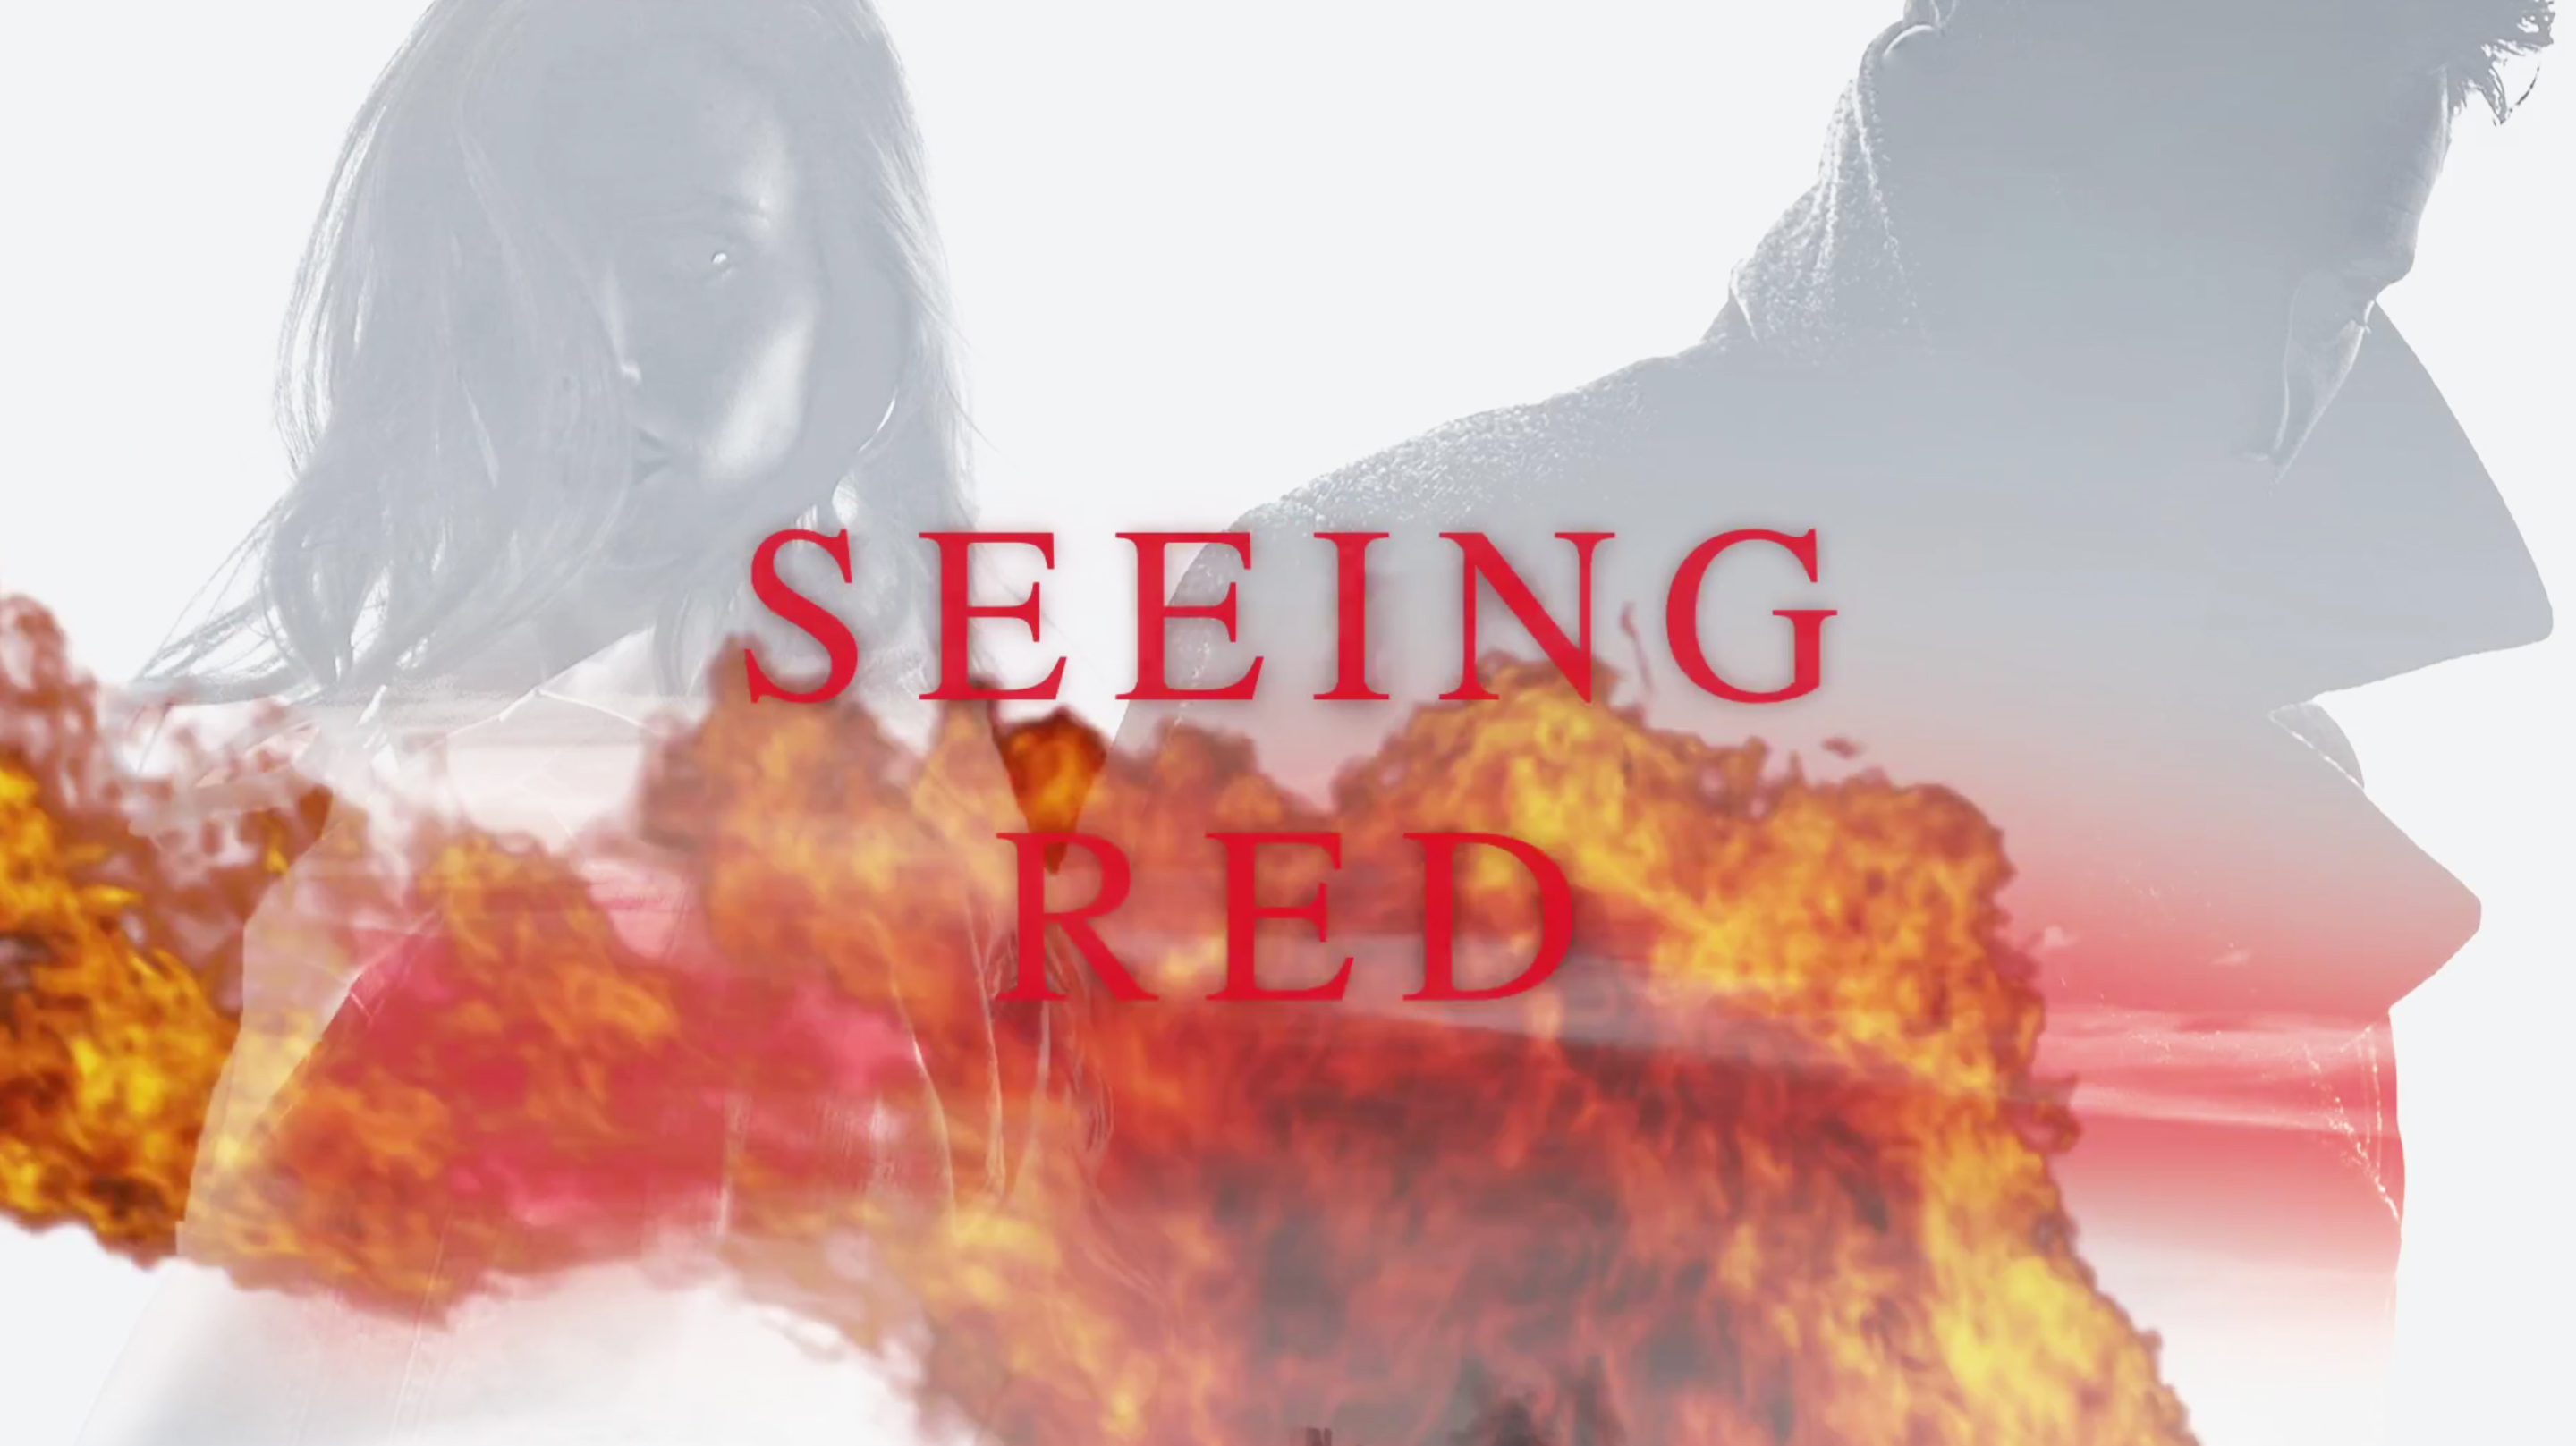 Seeing Red Trailer